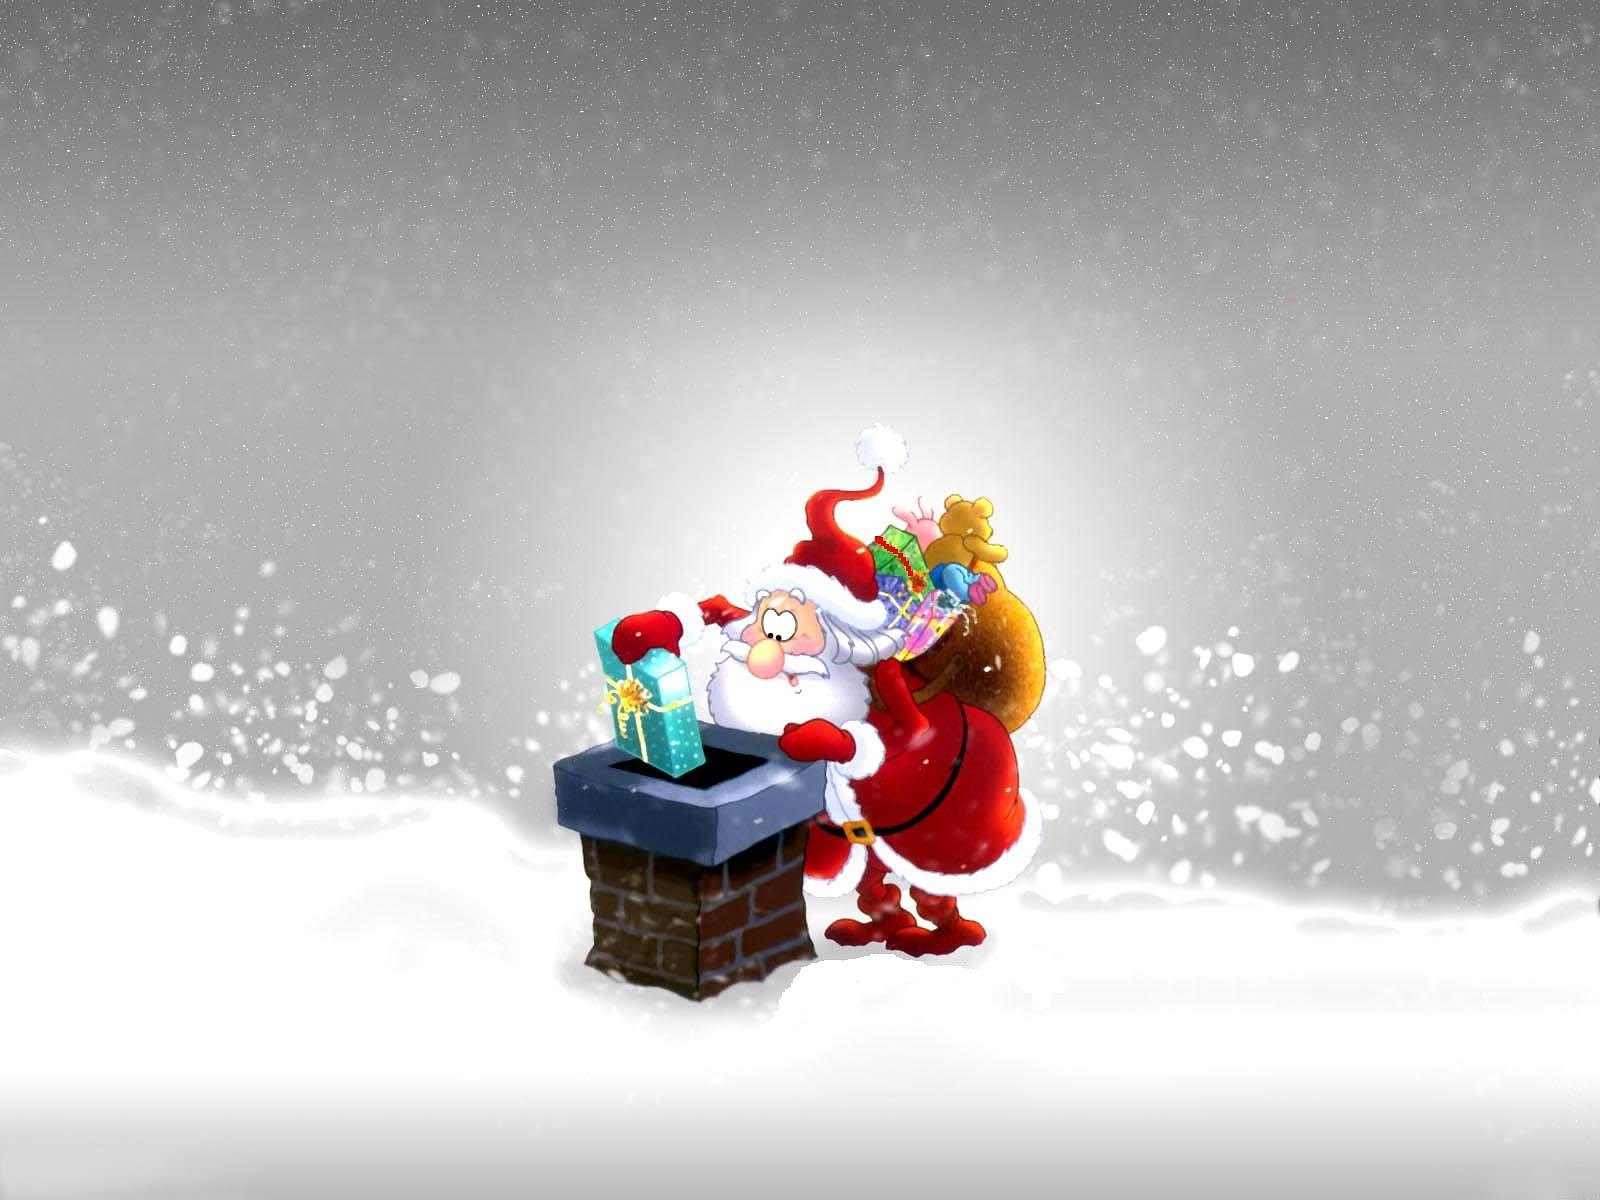 Kerstman wallpapers hd wallpapers - Lustige wallpaper ...